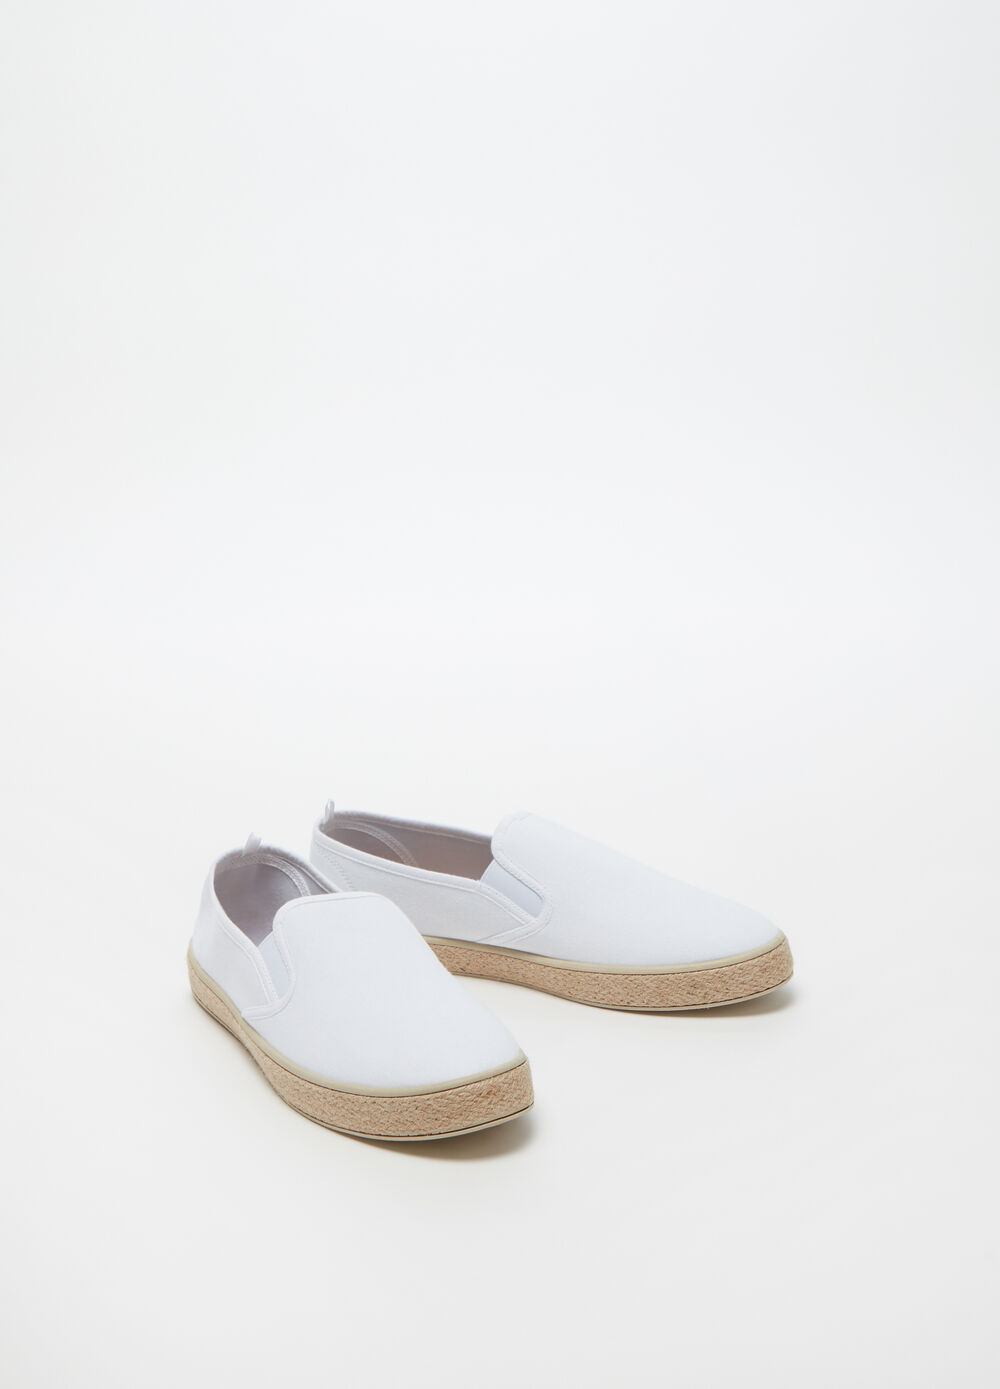 Solid colour slip-ons with cord sole